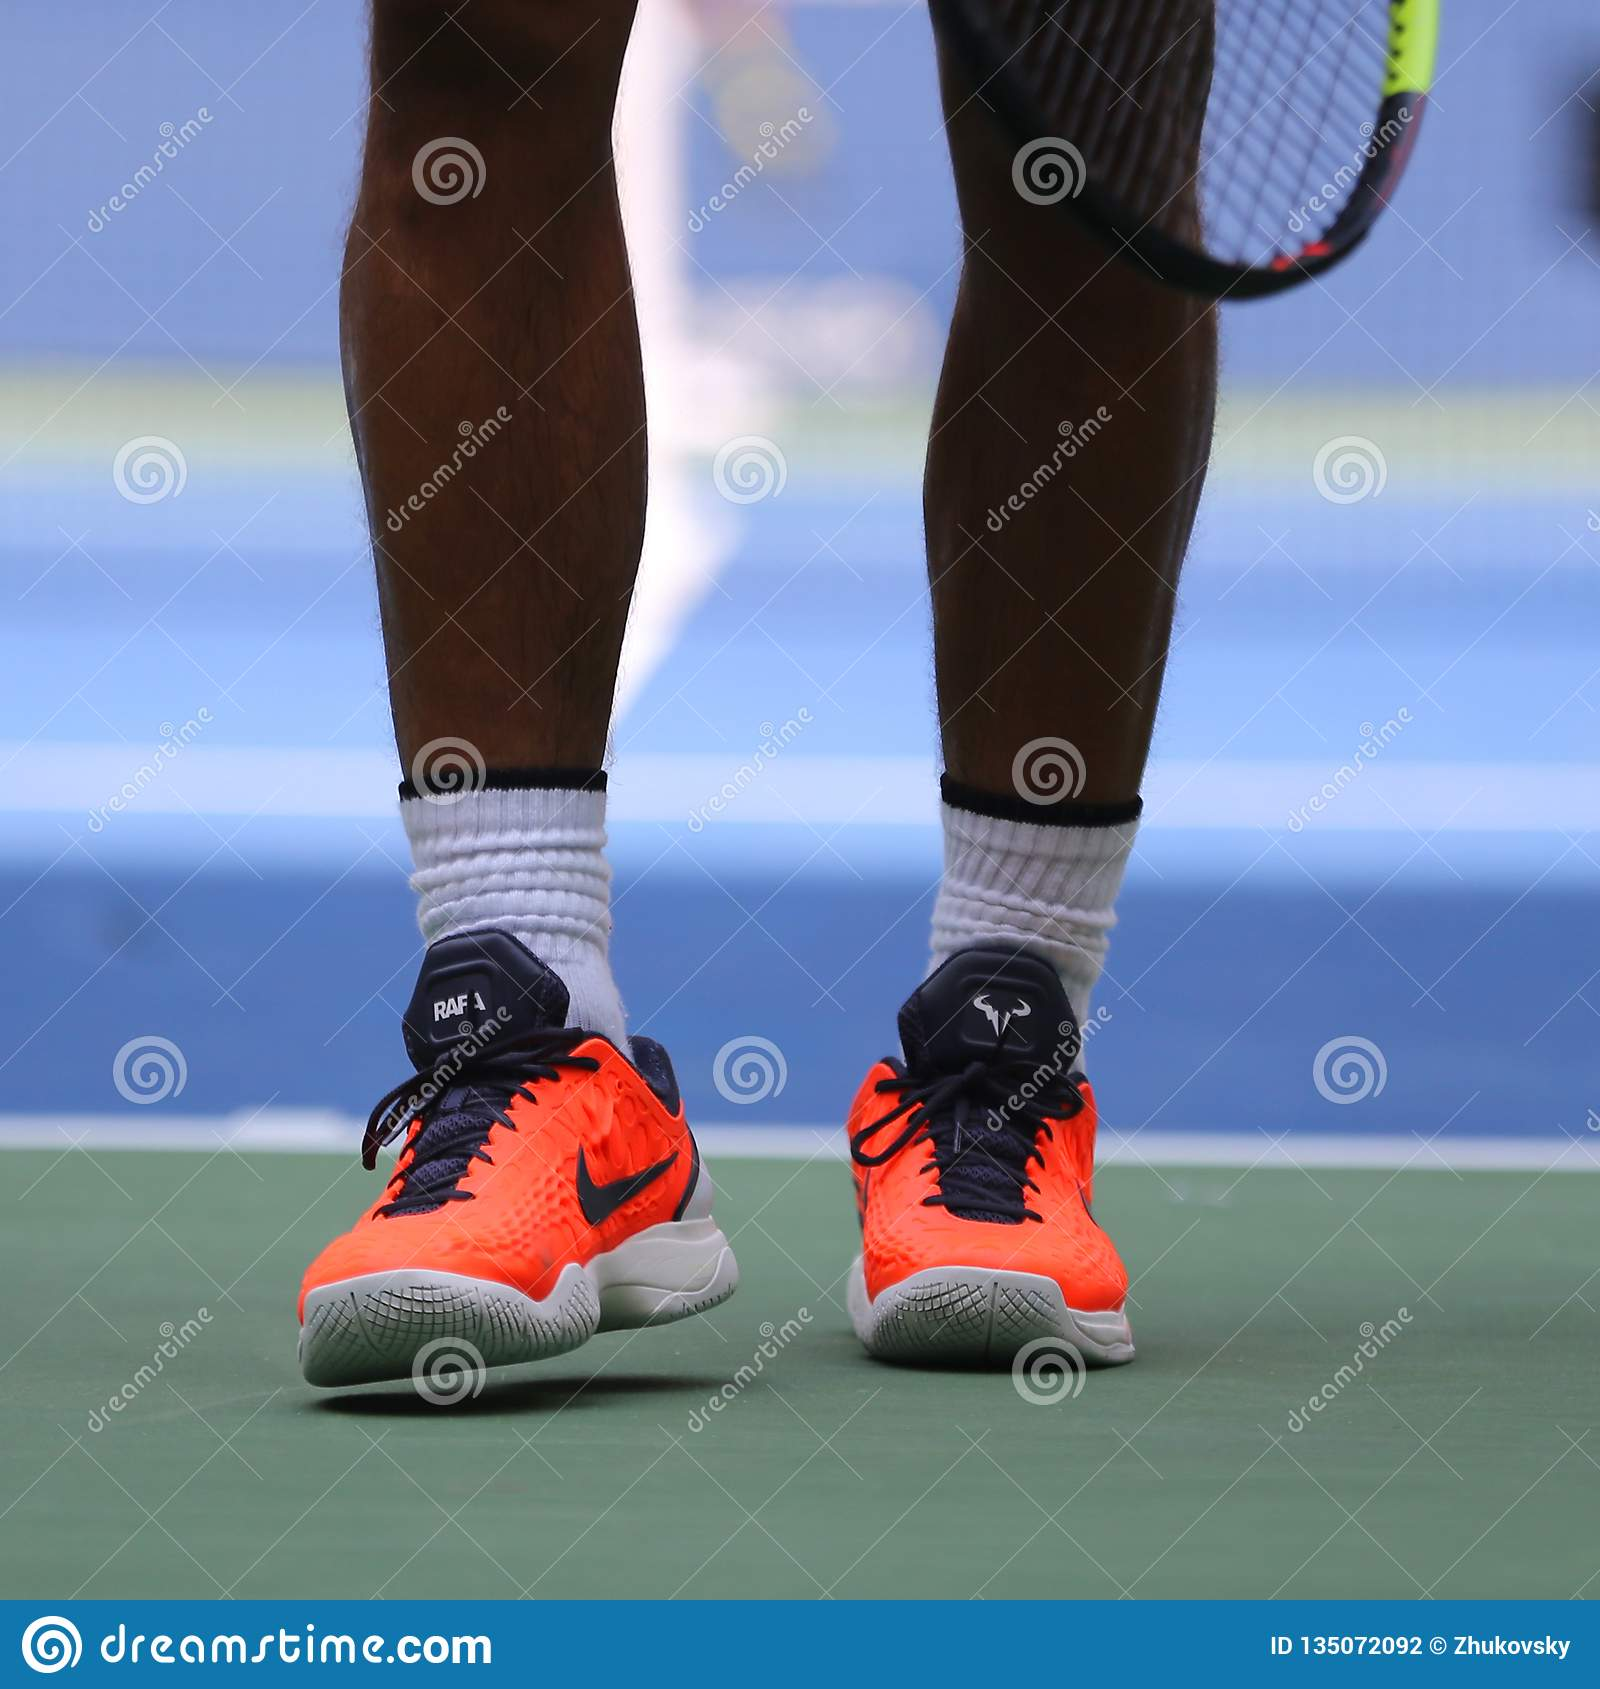 Grand Slam Champion Rafael Nadal Of Spain Wears Custom Nike Tennis Shoes During Us Open 2018 Editorial Photography Image Of Professional Players 135072092